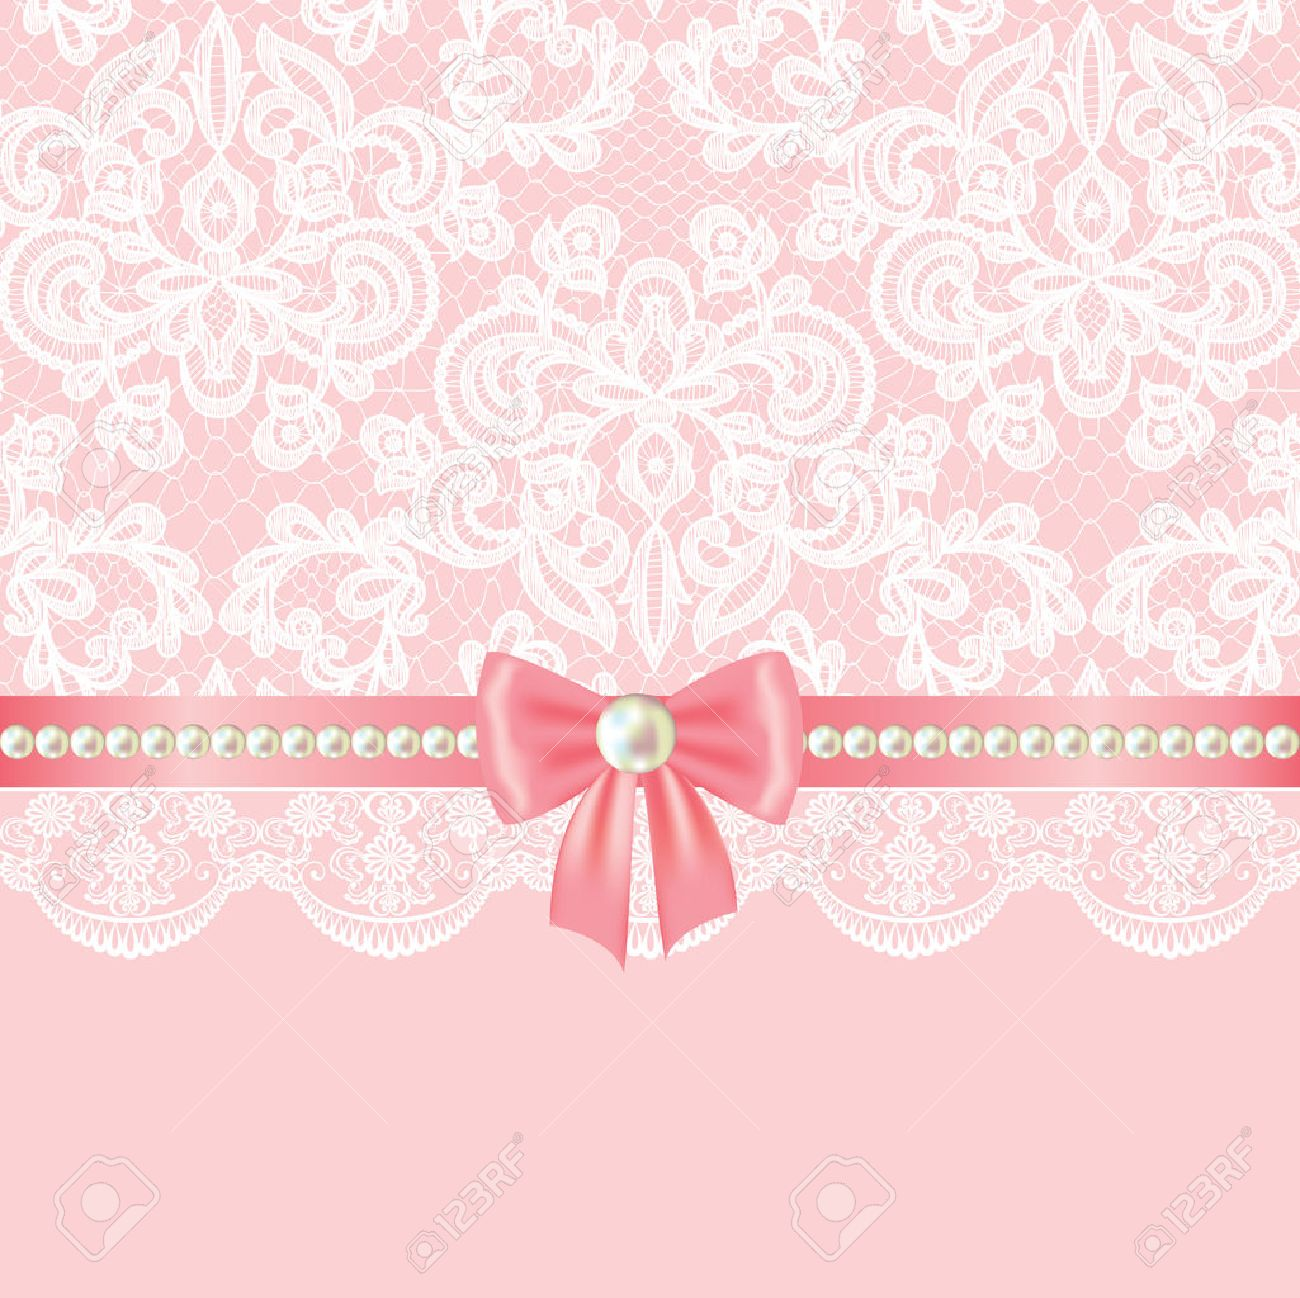 wedding invitation or greeting card with pearl border on lace